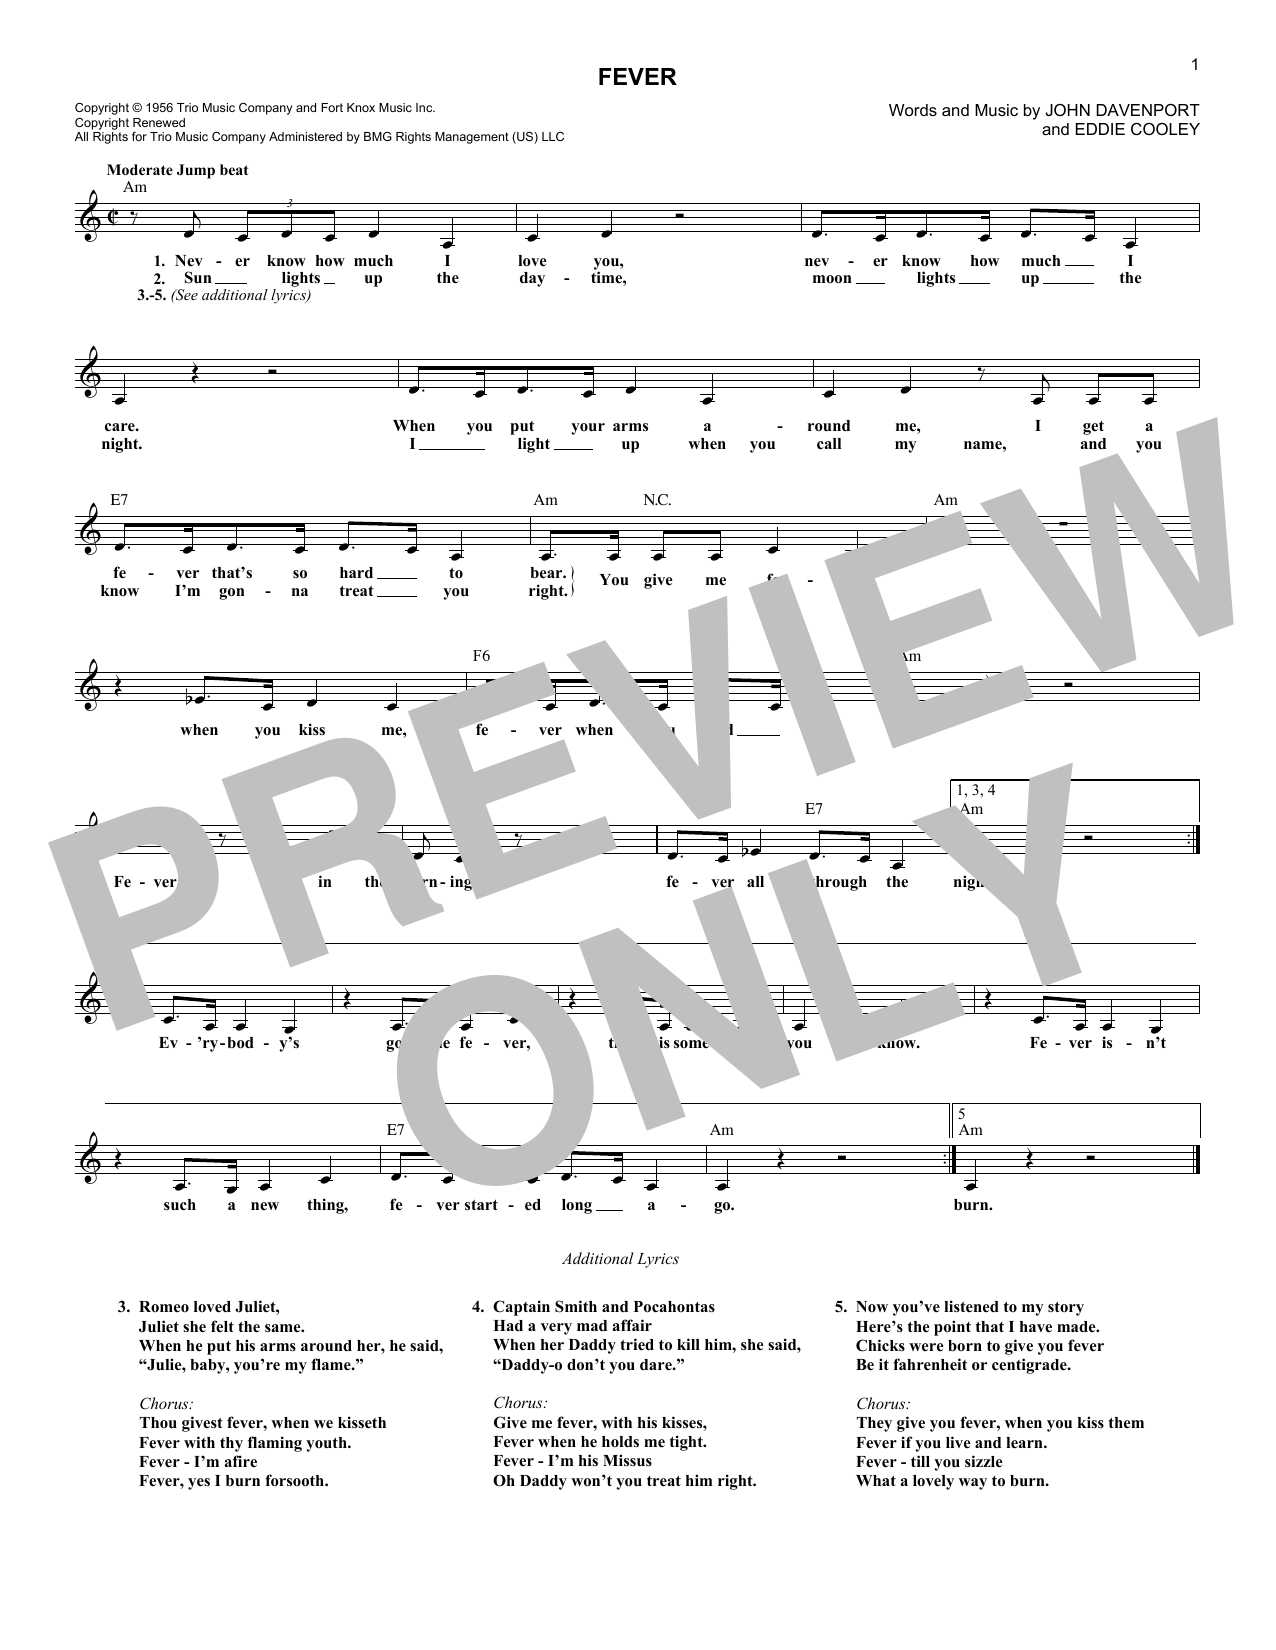 Fever chords by peggy lee melody line lyrics chords 182747 fever sheet music hexwebz Gallery